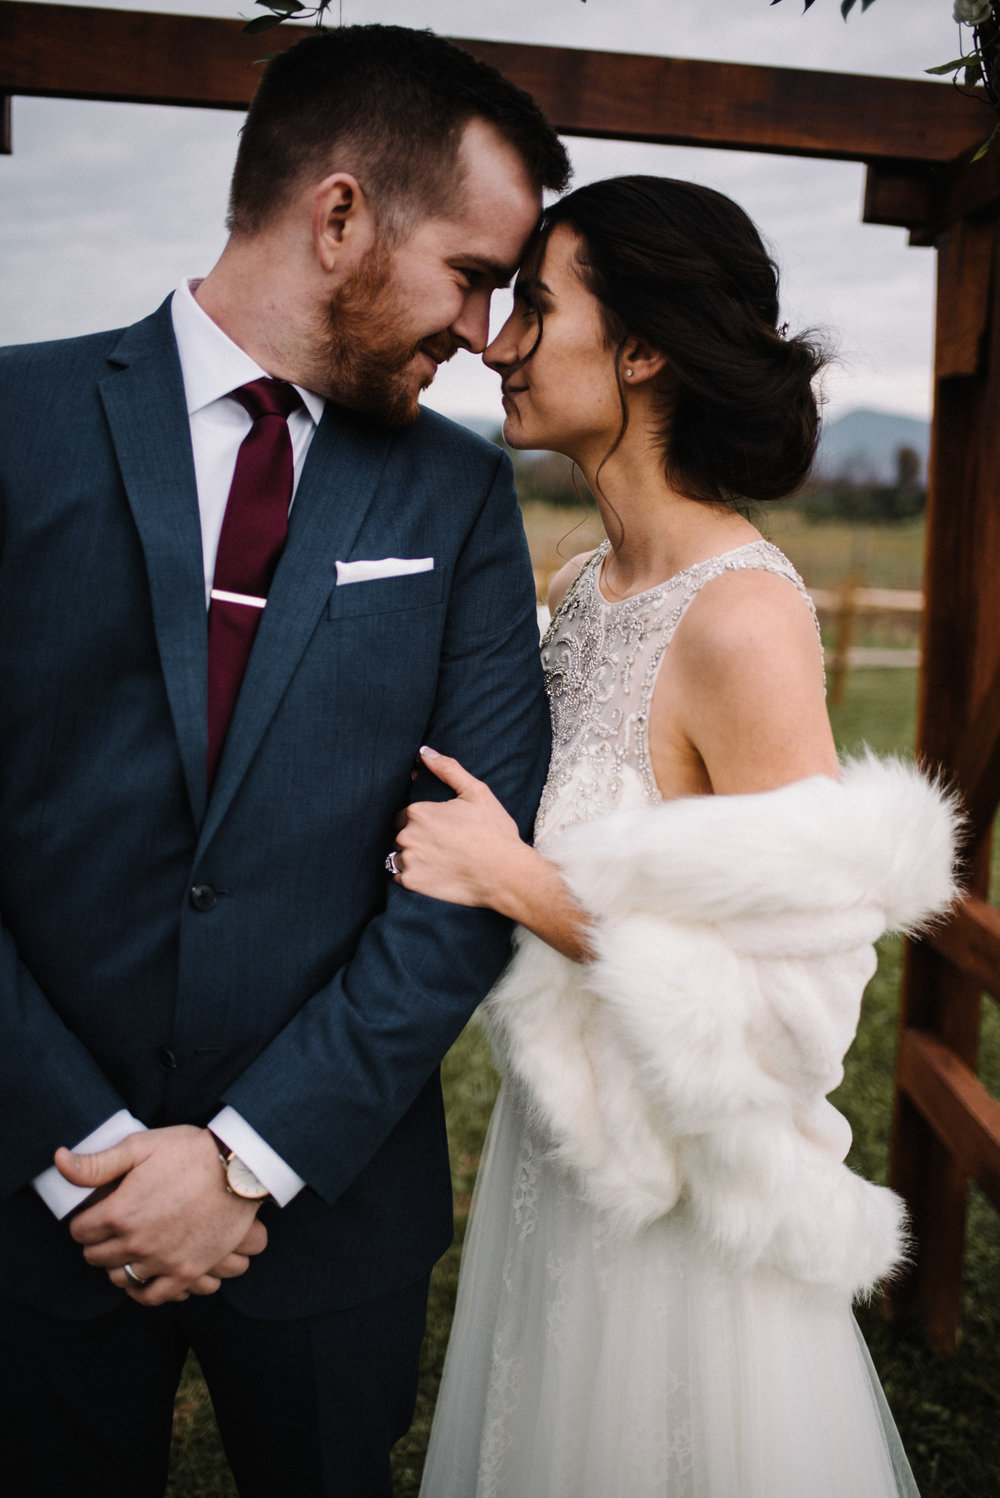 Alyssa and Jesse Winter Vineyard Wedding Luray Virginia Shenandoah Valley Faithbrooke_75.JPG